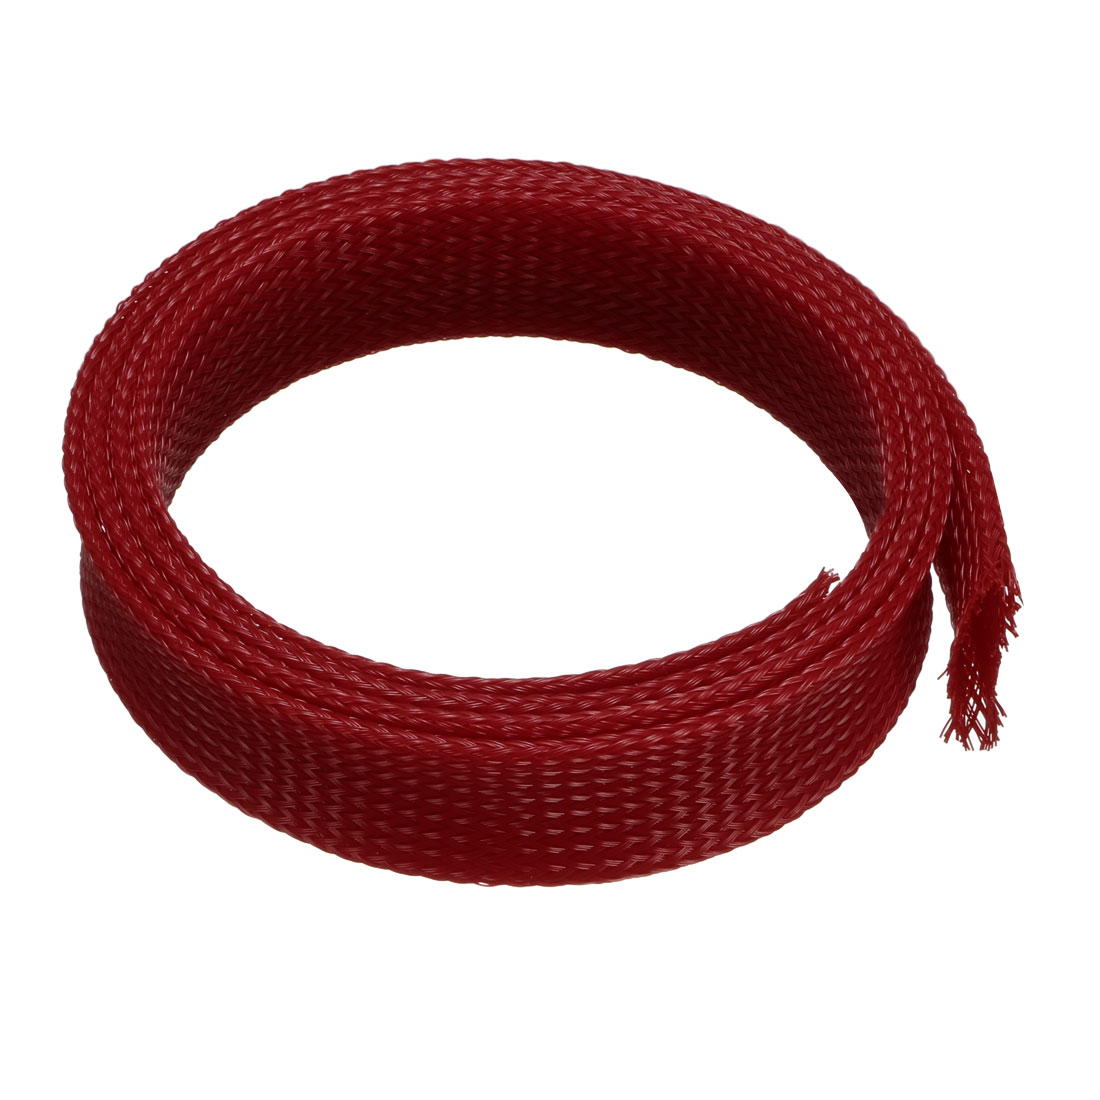 20mm Dia Tight PET Expandable Sleeving Cable Wire Wrap Sheath Red 1M